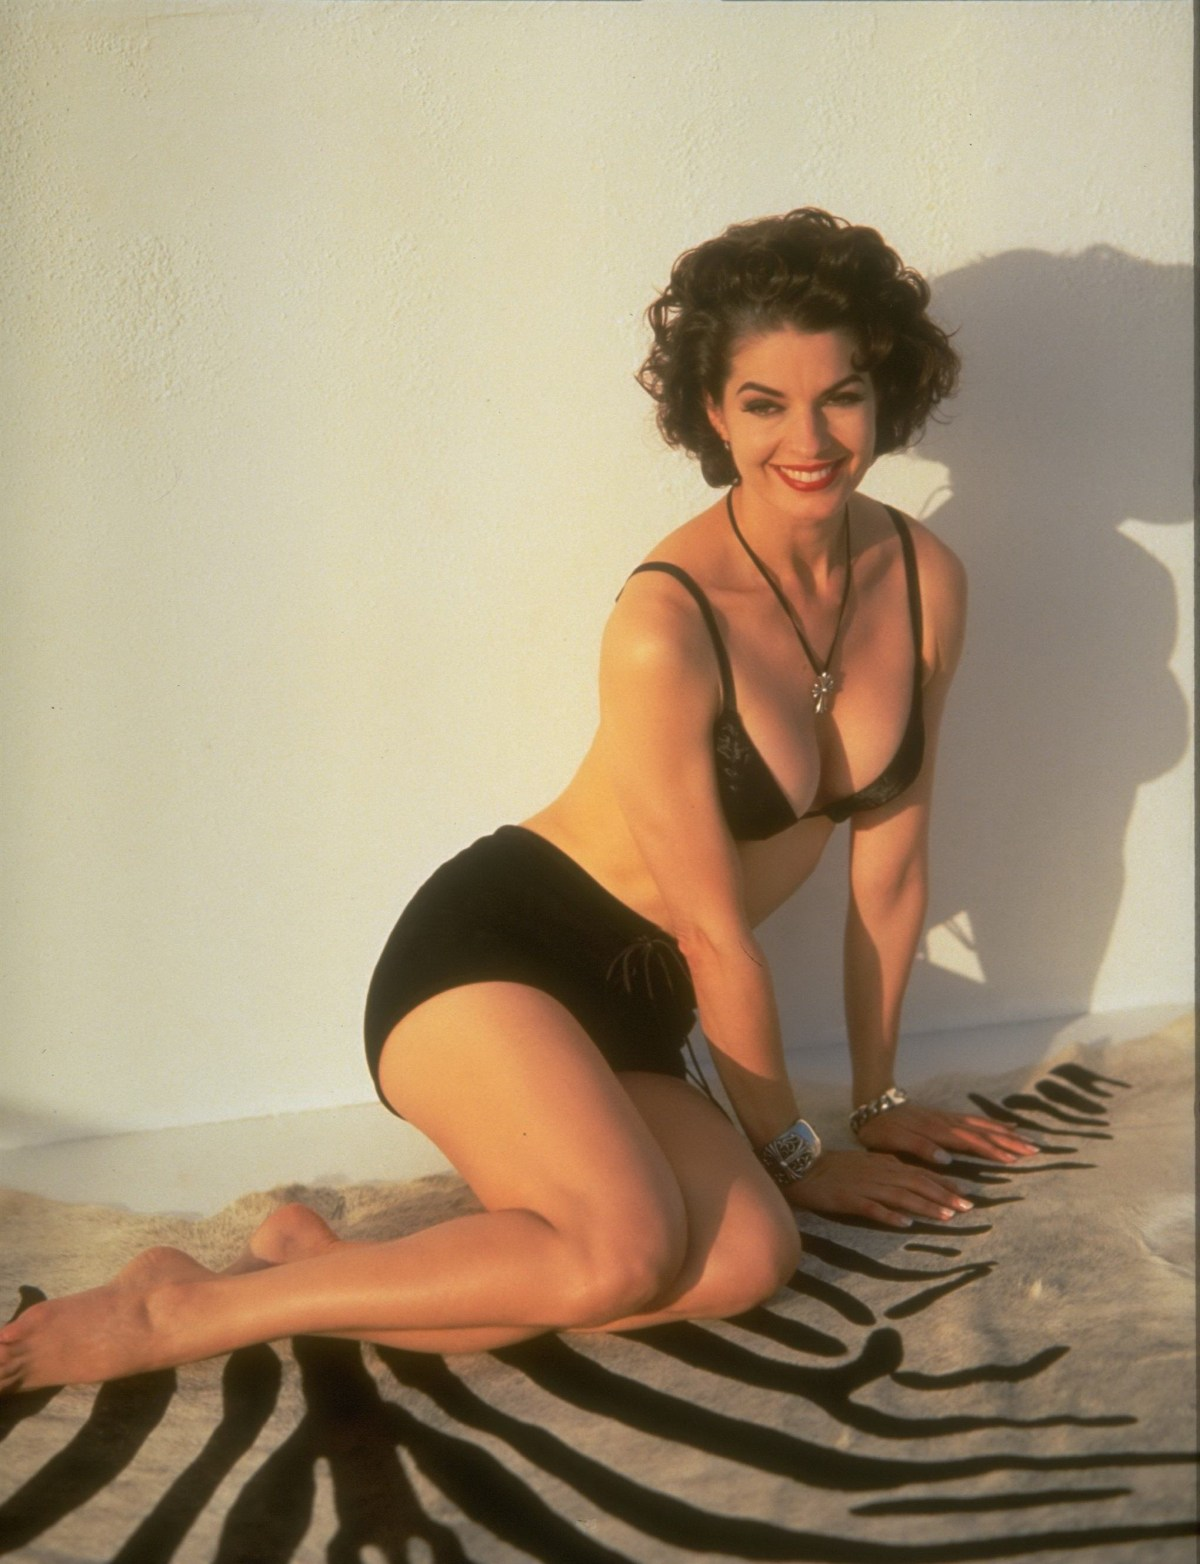 http://seagy99.files.wordpress.com/2010/12/963438cb-e7a7-4c44-8f00-6e2e83facff9_sela-ward.jpg?w=1200